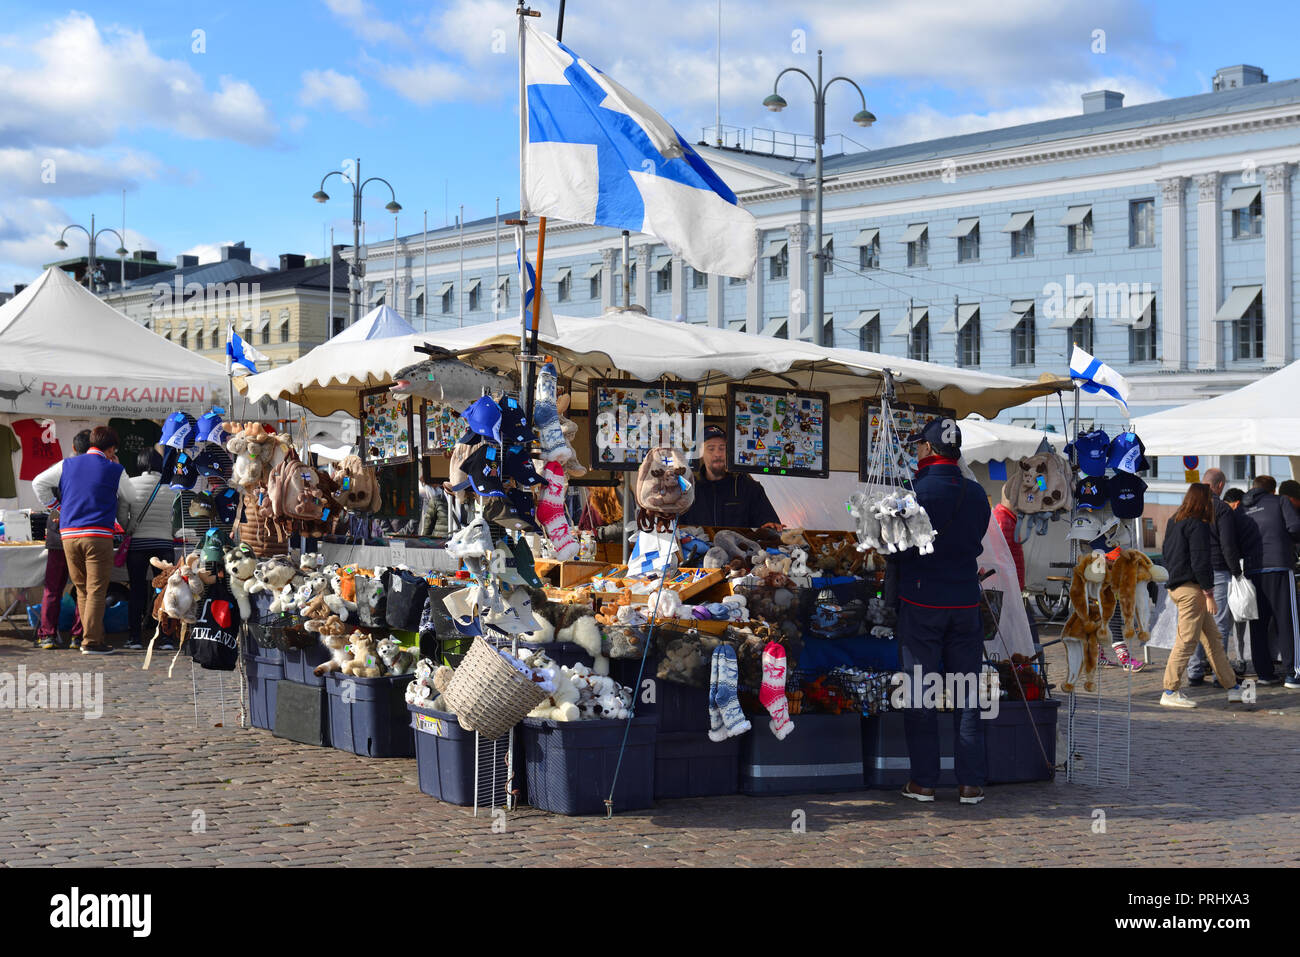 Market Square (Kauppatori). Finnish souvenirs and gifts. Helsinki - Stock Image